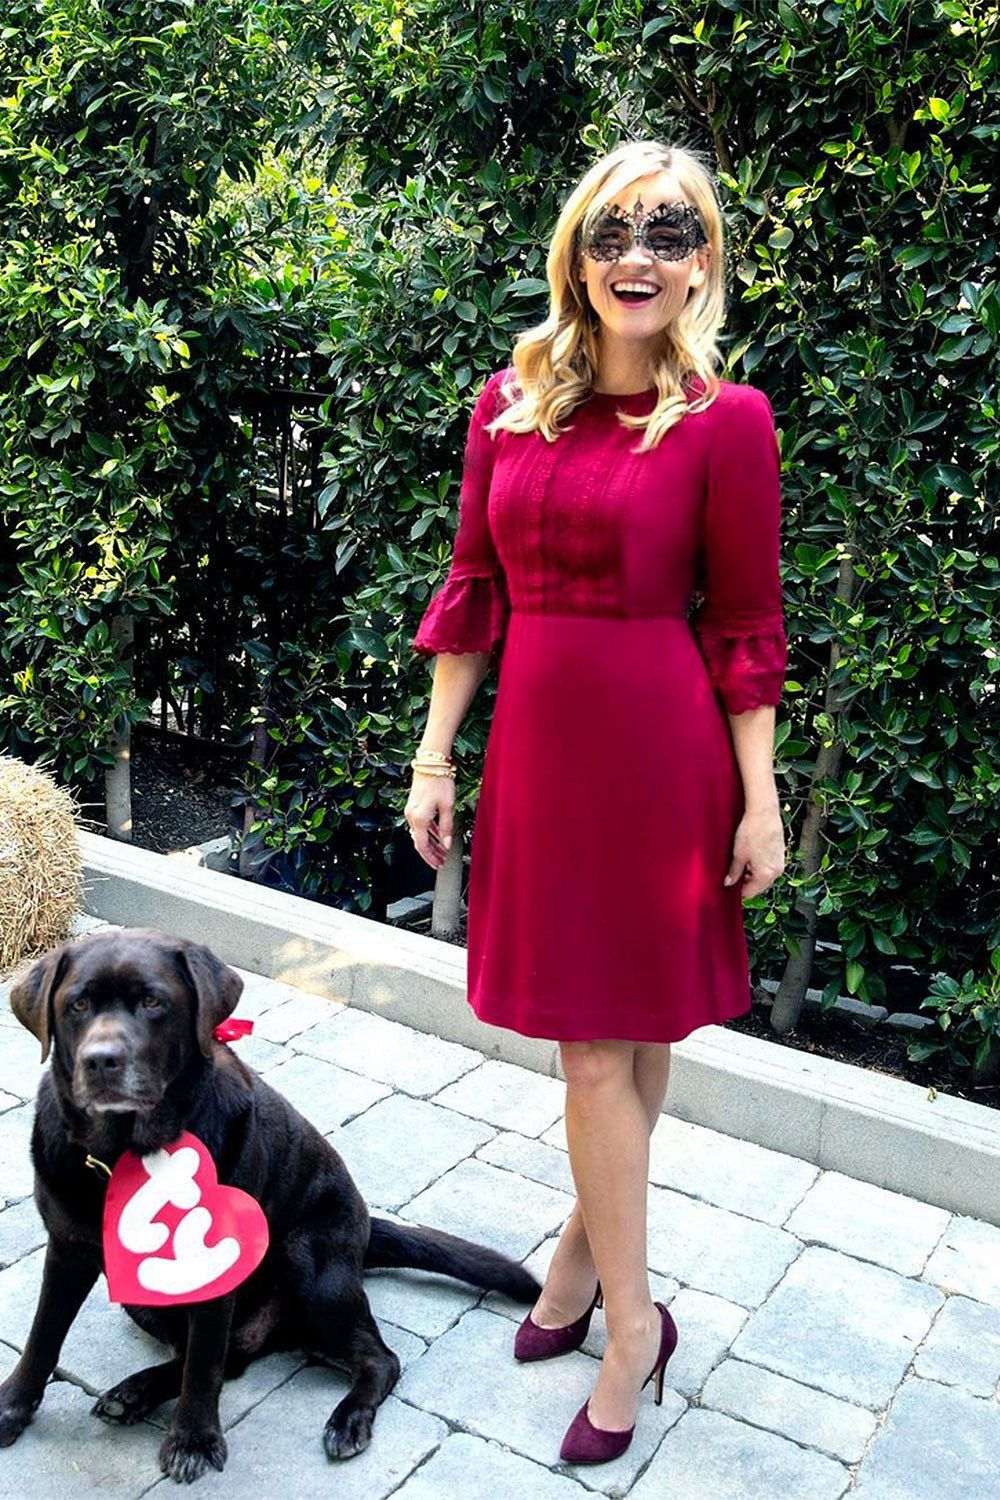 Reese Witherspoon's Draper James Fall Collection Has Landed at Nordstrom - Here's What to Buy!